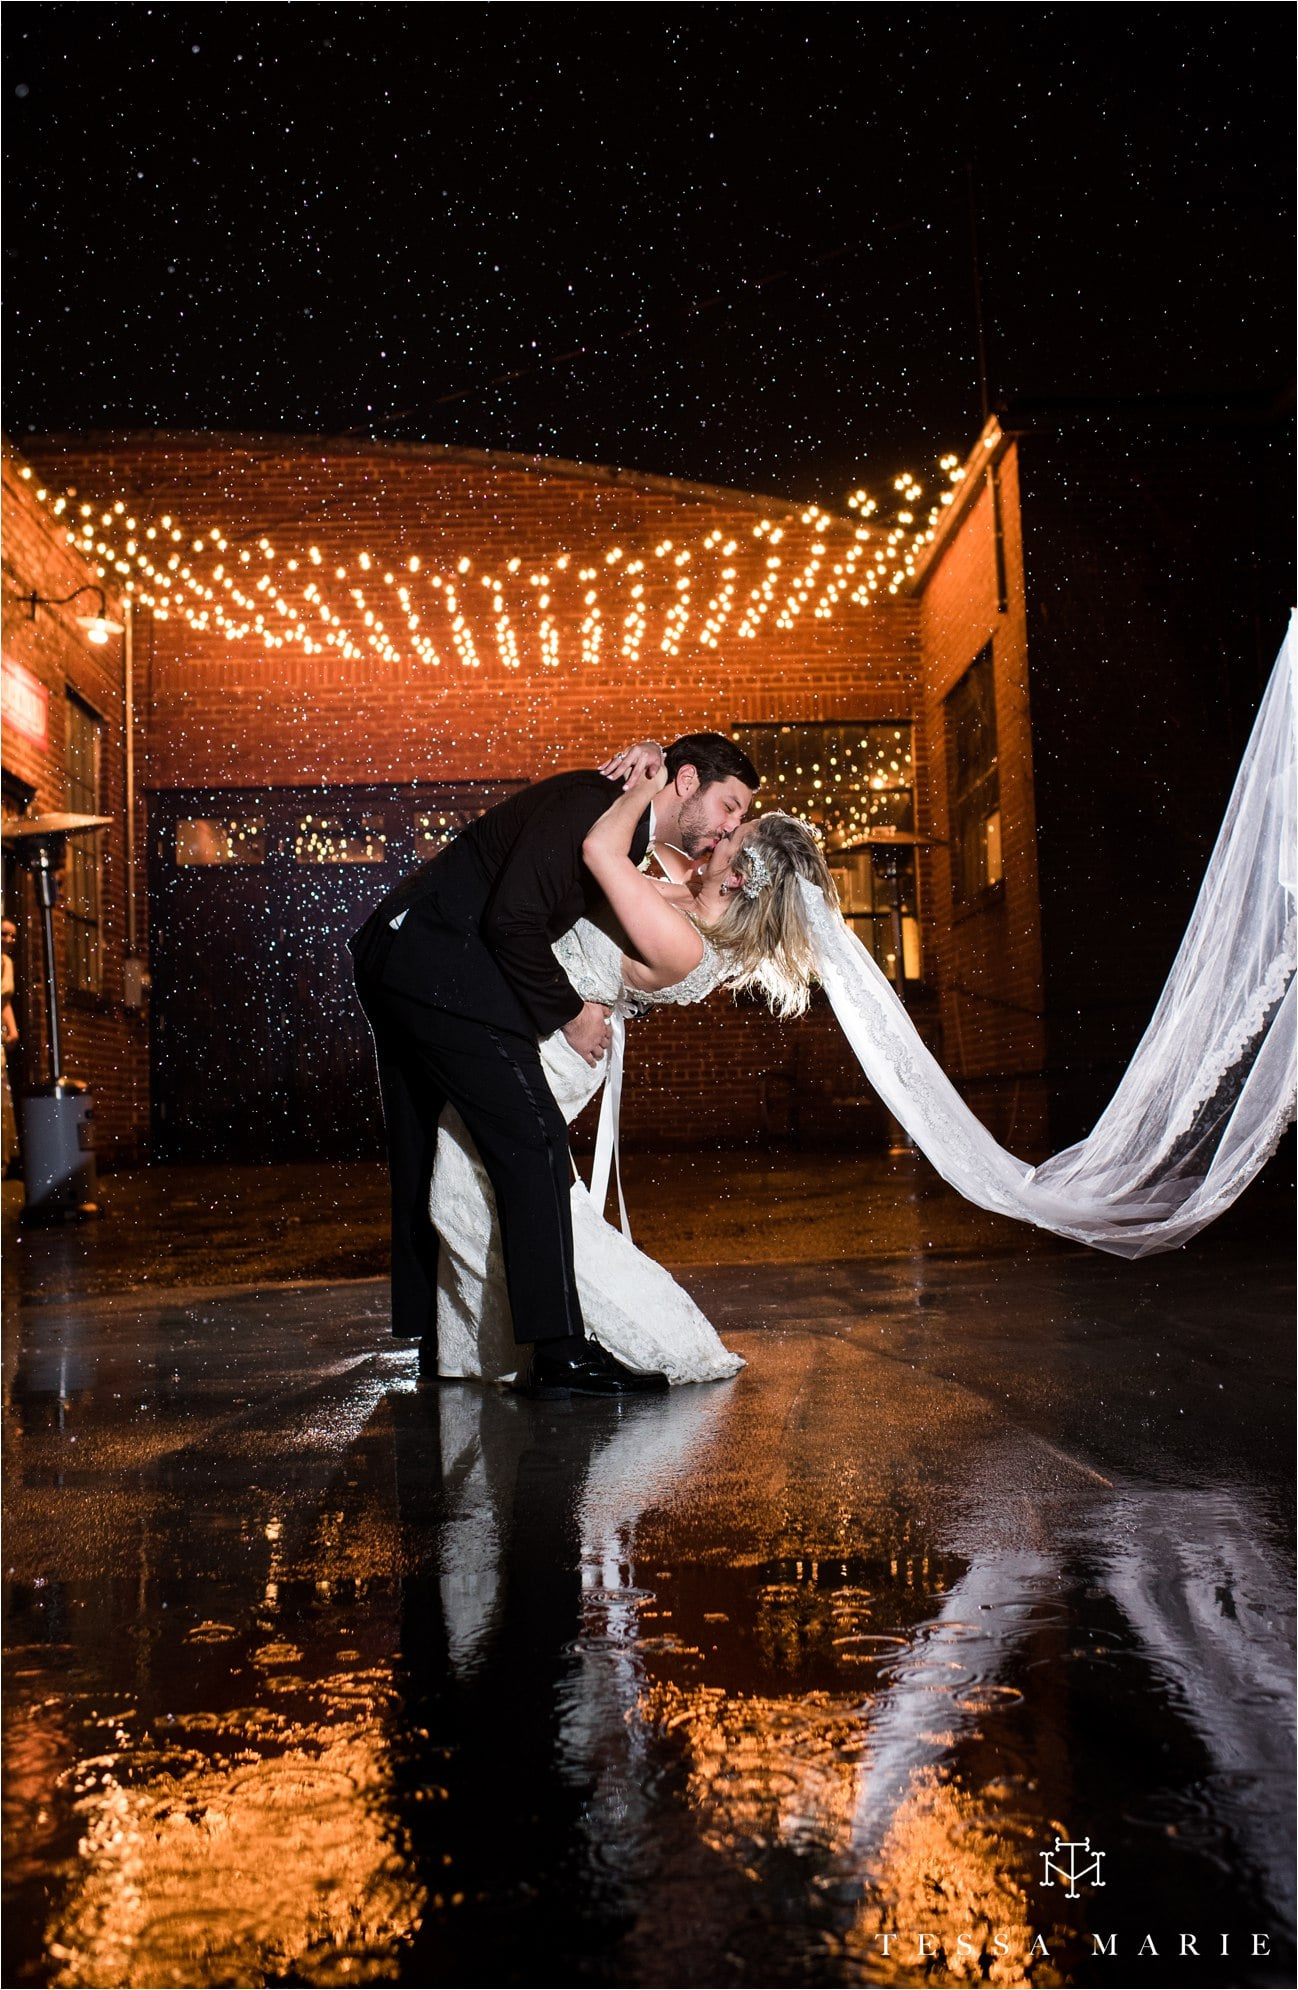 tessa_marie_brickyard_marietta_new_years_wedding_pictures_candid_emotional_wedding_portraits_0167